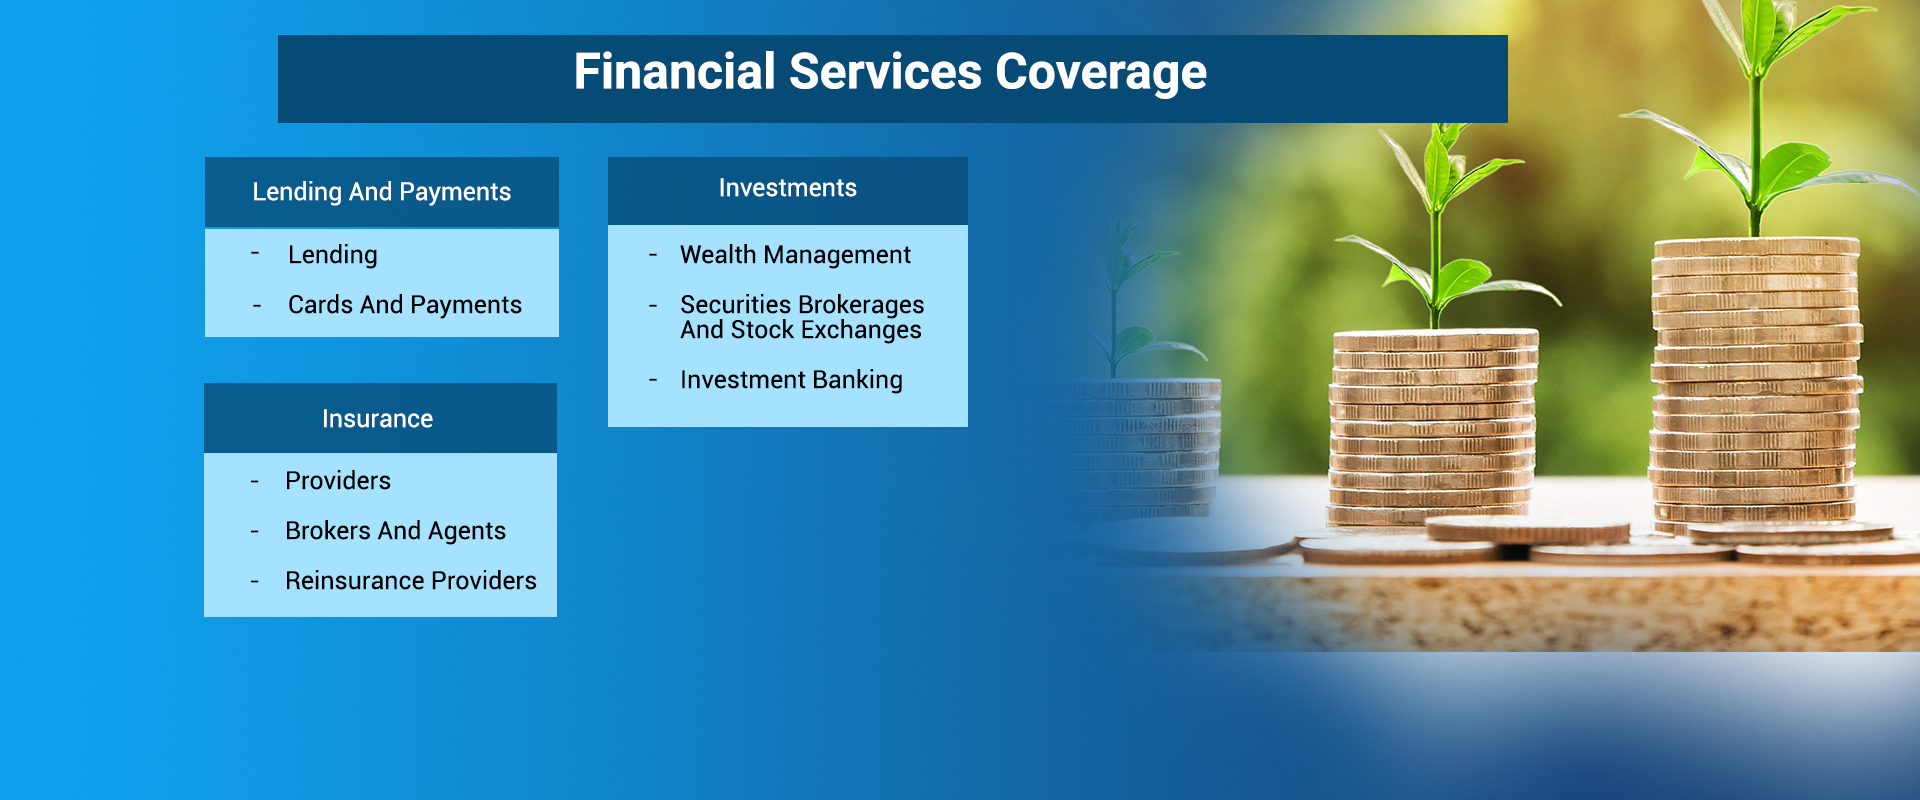 Financial Services Coverage